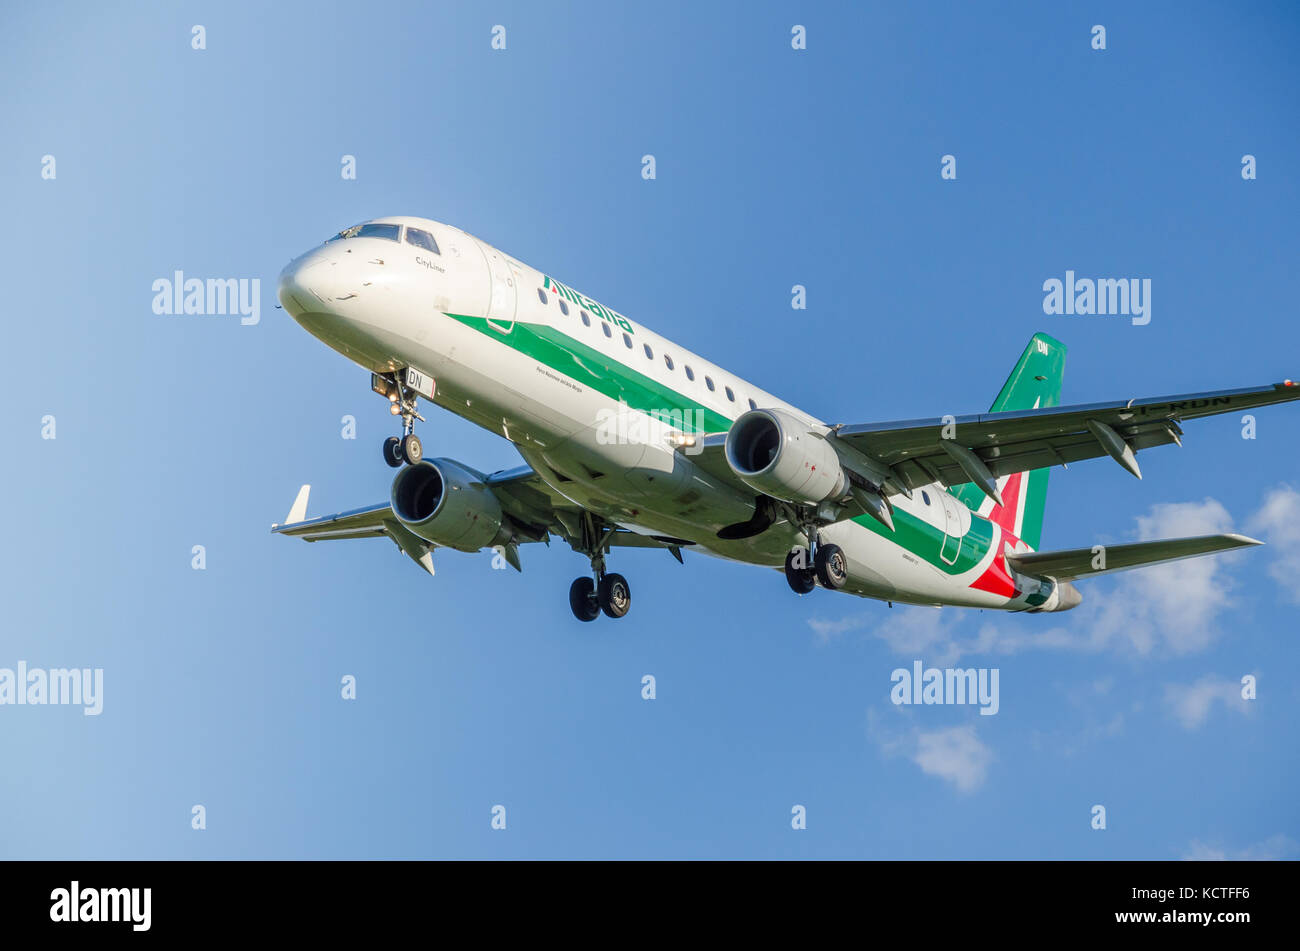 An Alitalia Embraer E175LR Cityliner airplane against a blue sky. These planes operate short-haul flights within - Stock Image